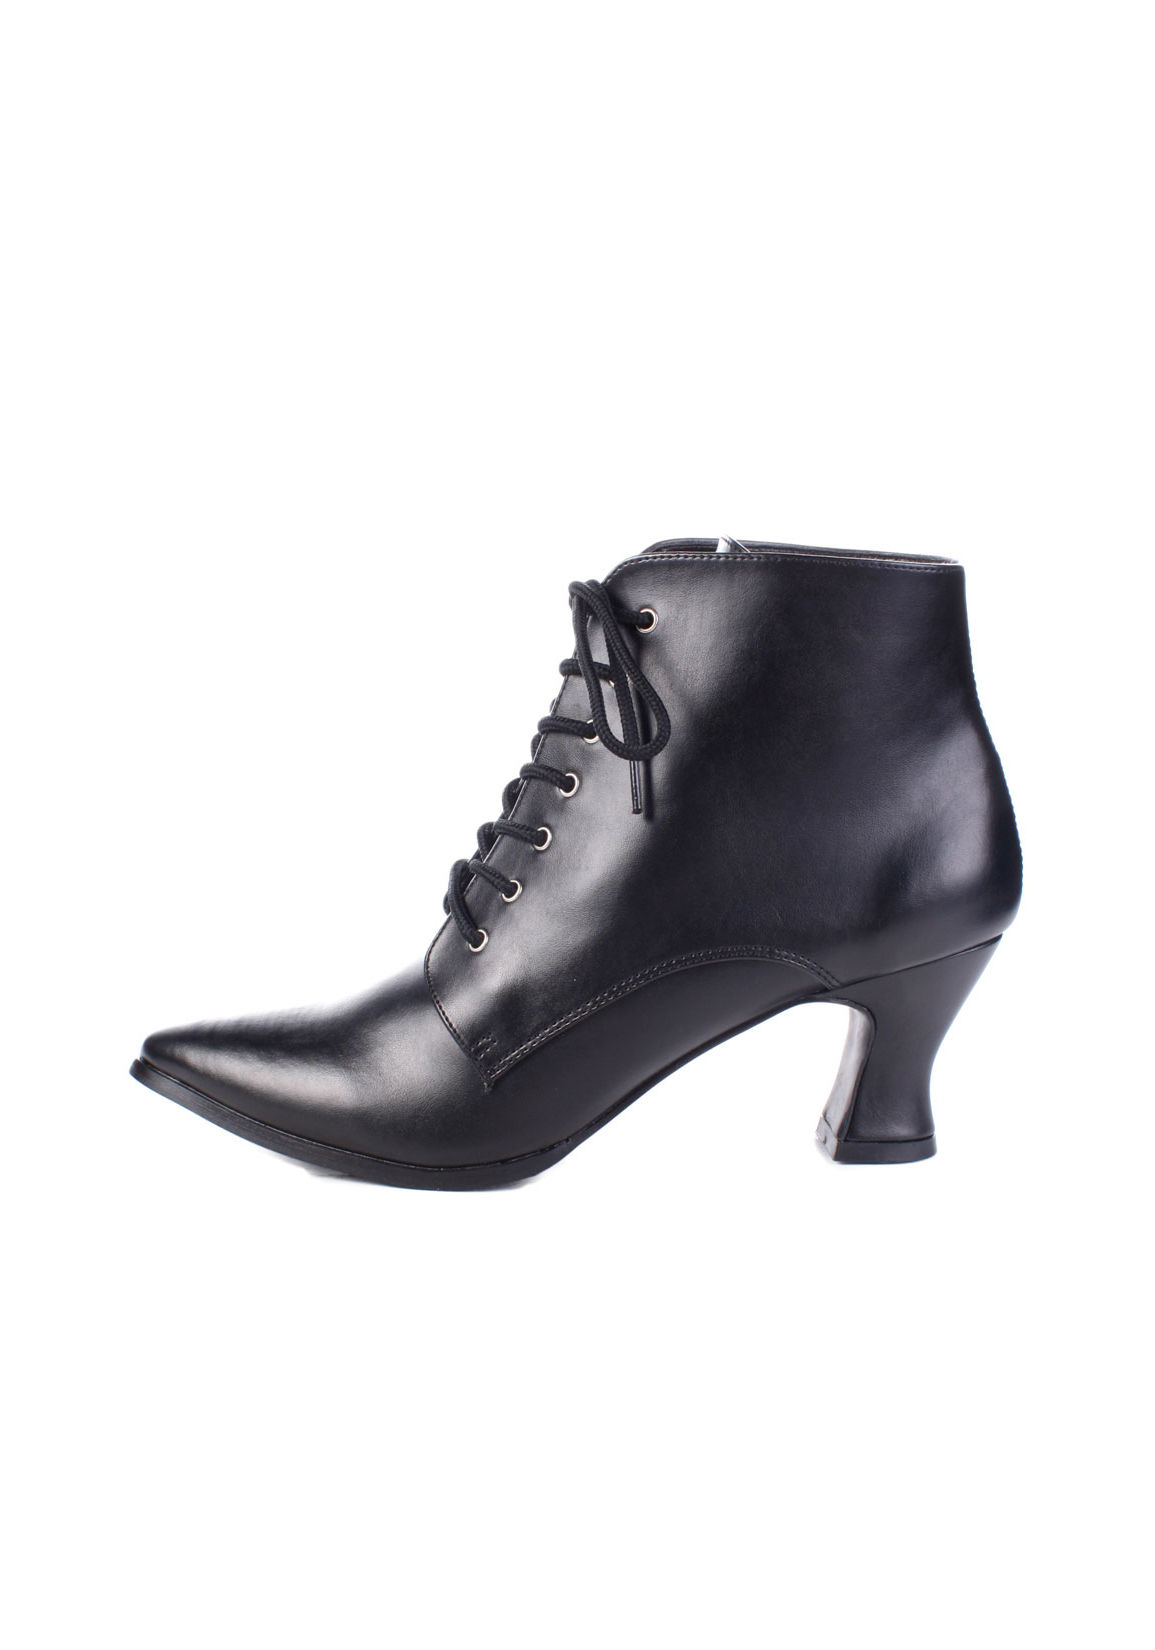 Free shipping BOTH ways on 2 inch heel ankle boots, from our vast selection of styles. Fast delivery, and 24/7/ real-person service with a smile. Click or call